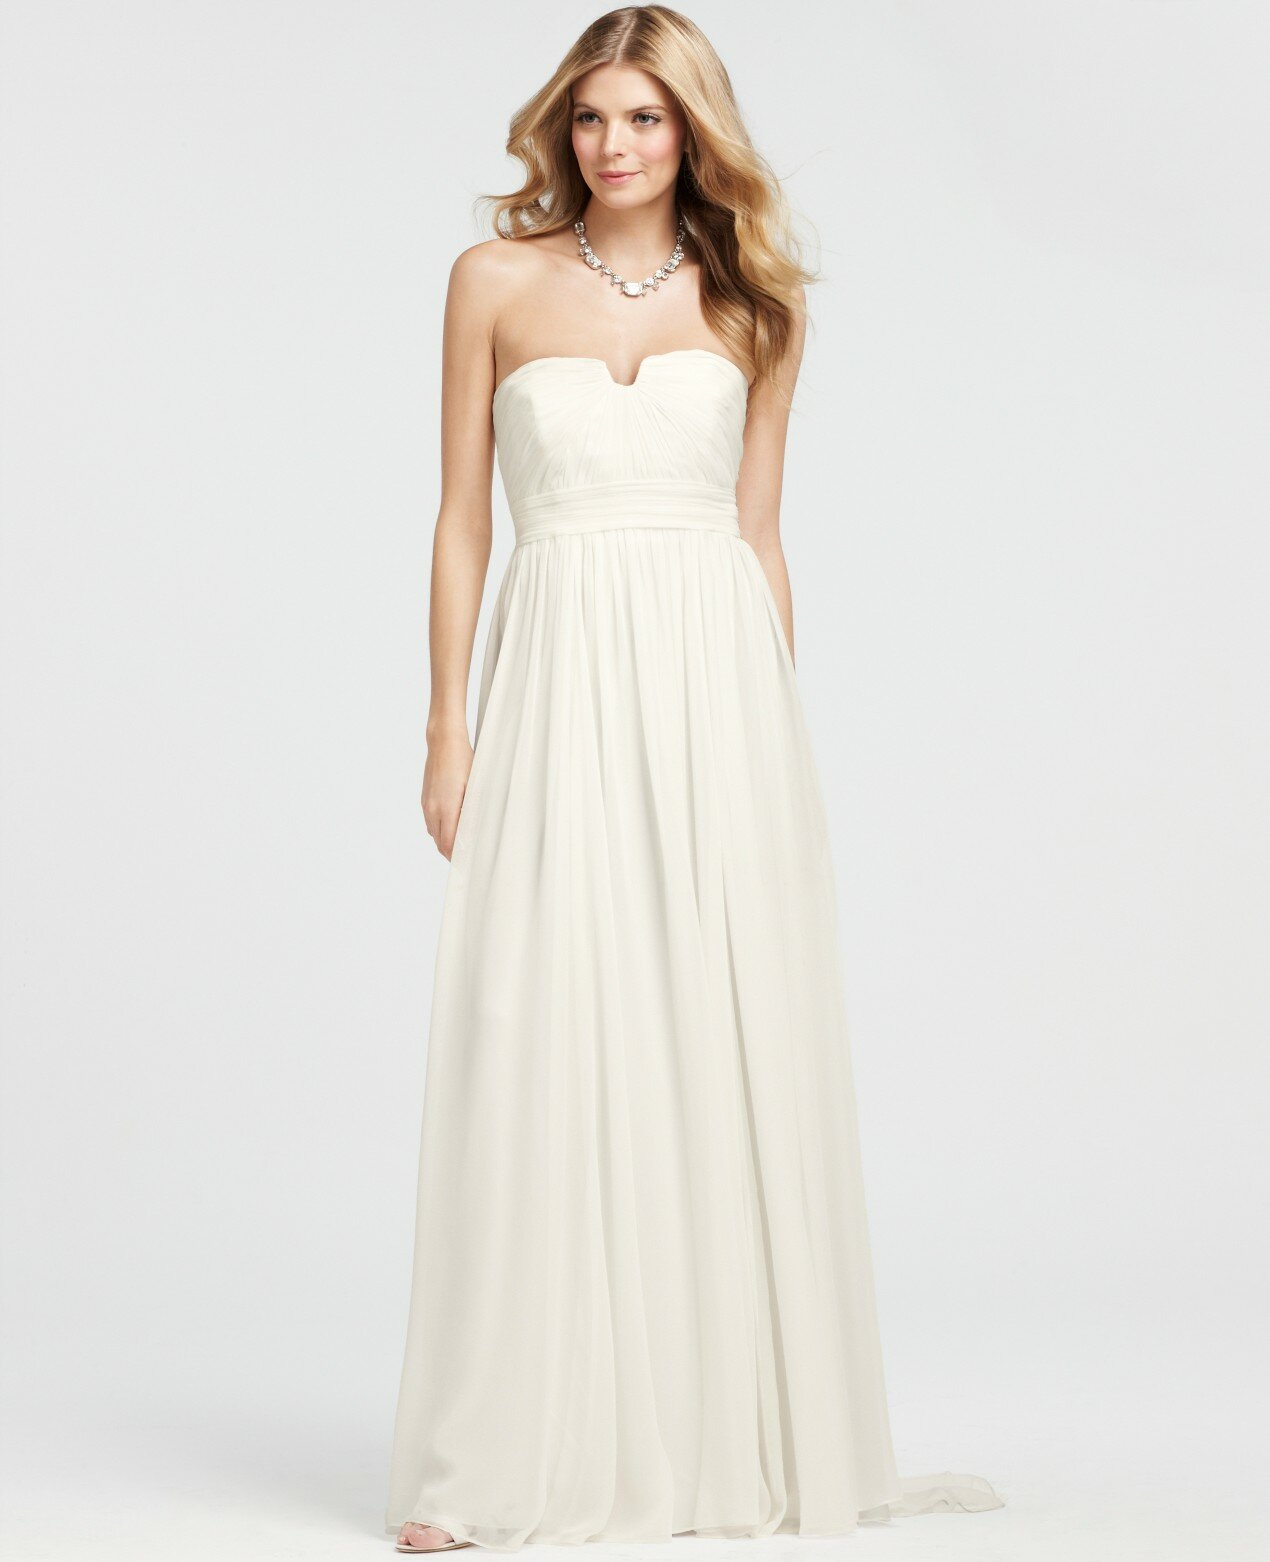 ann taylor wedding dresses flowy wedding dresses Ann Taylor wedding dresses Pictures ideas Guide to buying Stylish Wedding Dresses